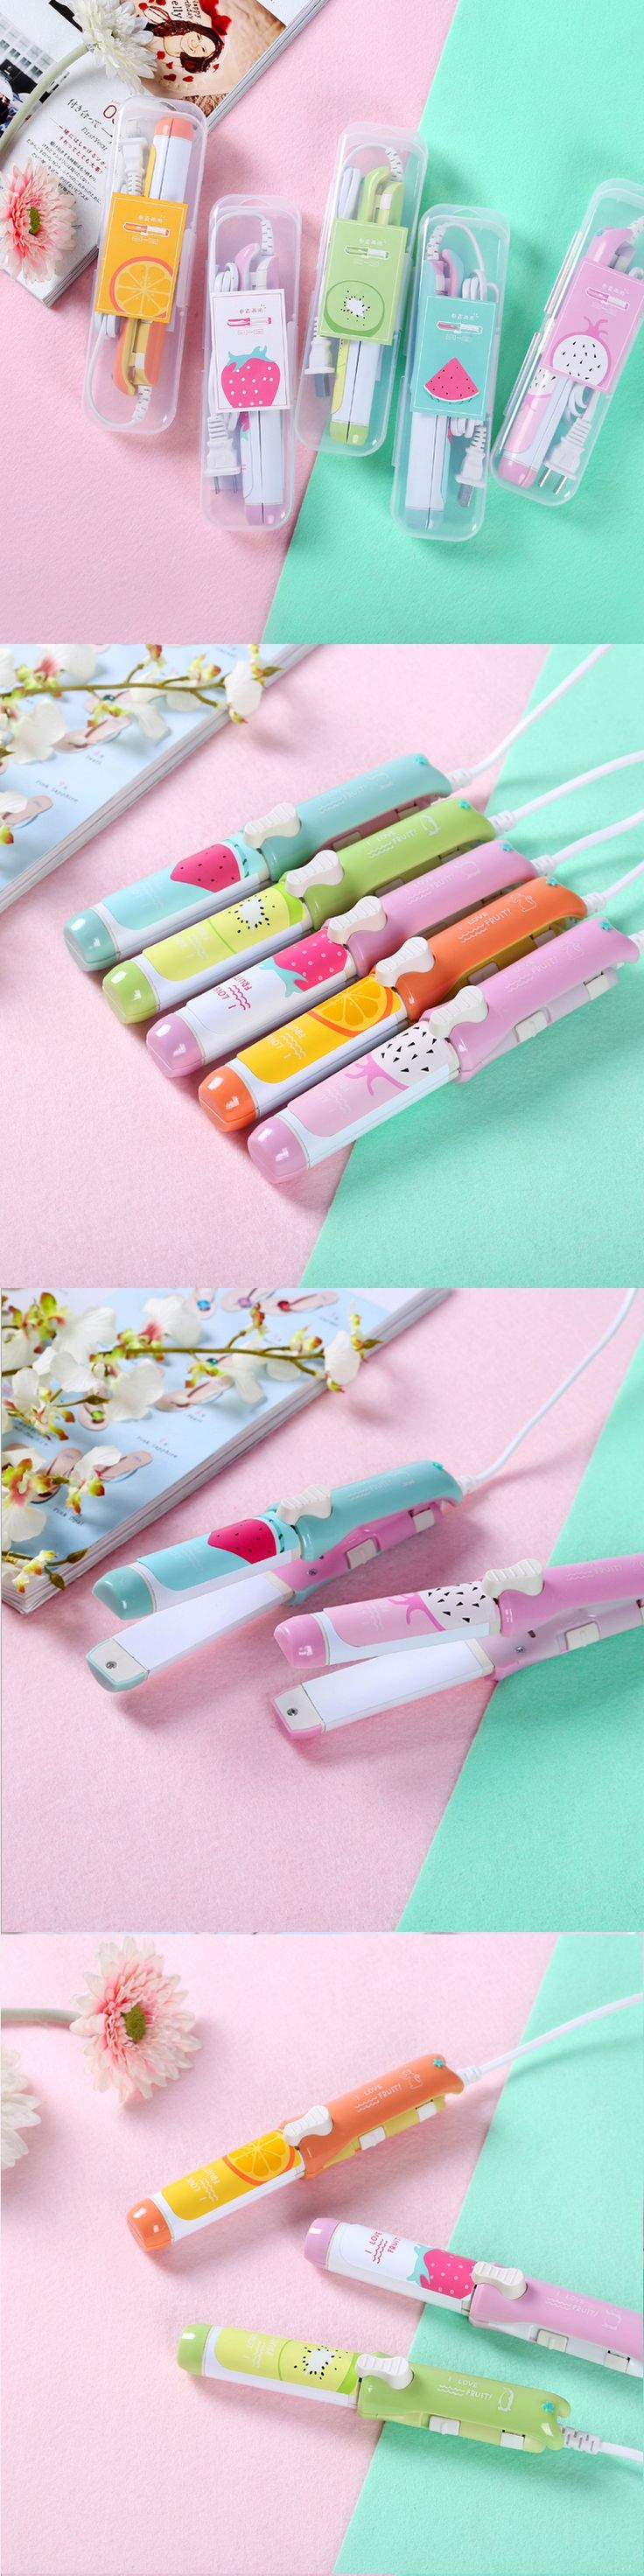 At Fashion 220V Electric Hair straightener Mini hair curling irons Travel hair tools Cute Candy Color Flat Iron drop shipping